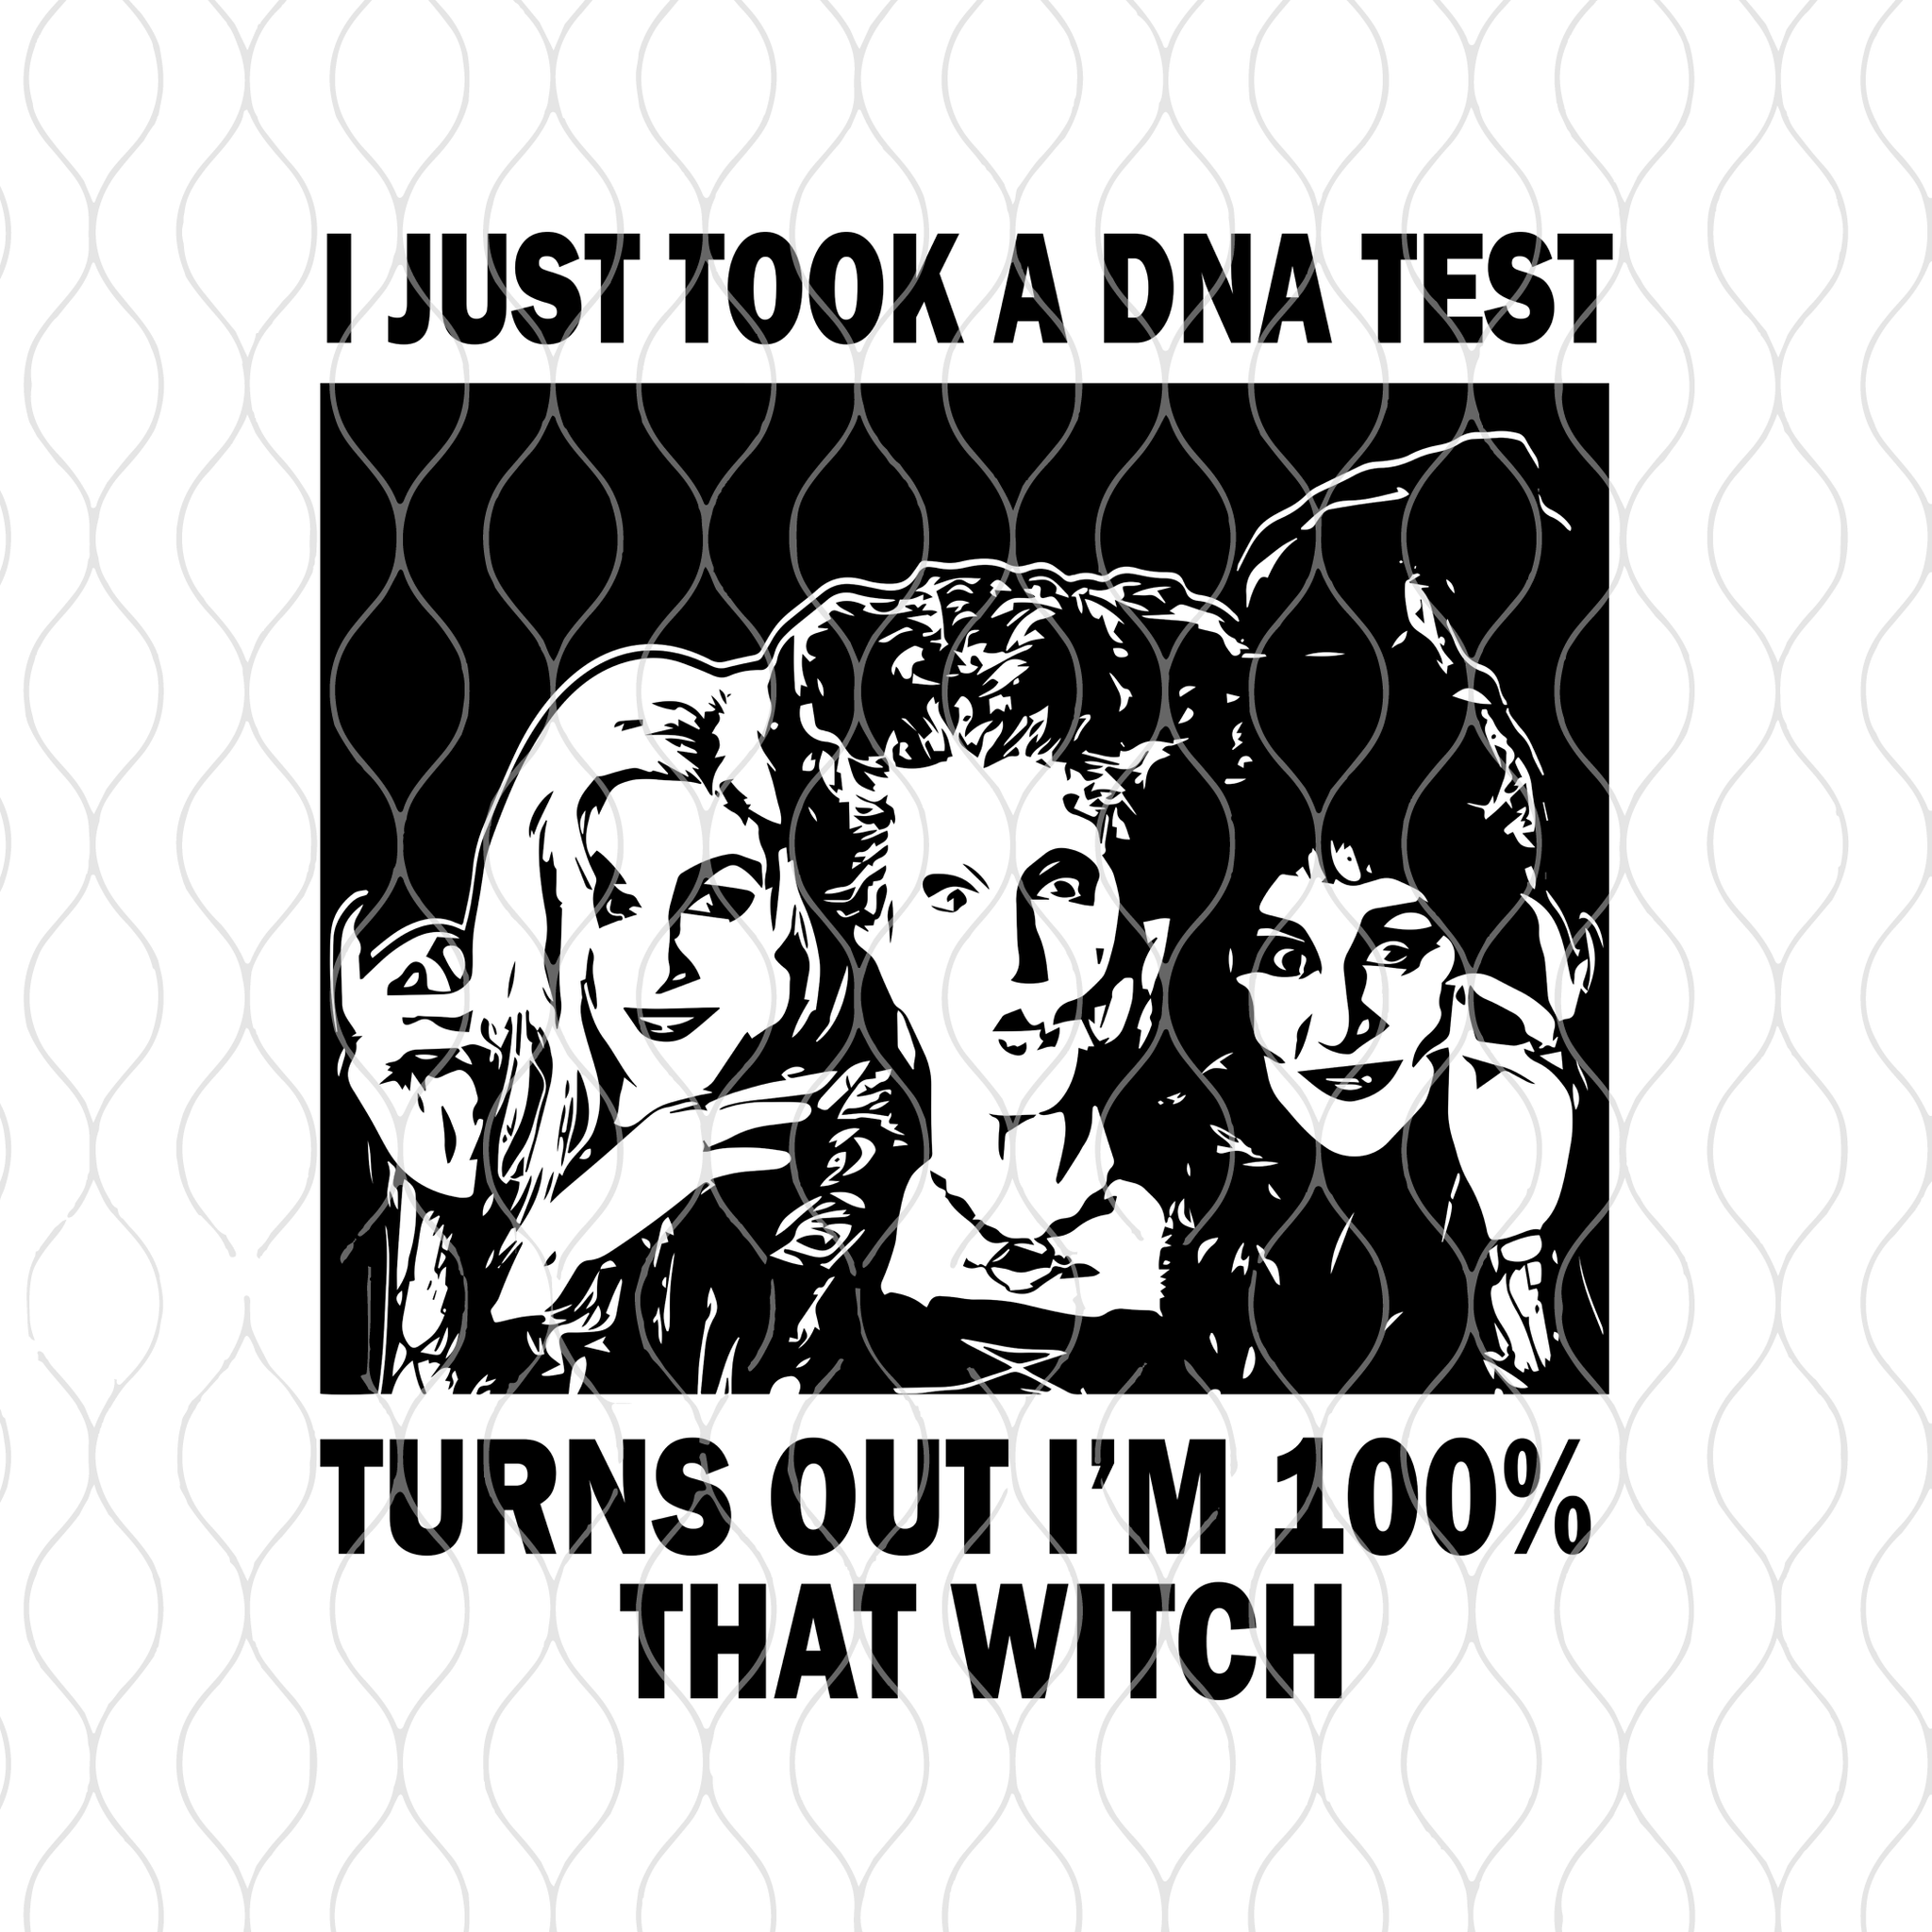 I just took a dna test turns out i'm 100% that witch,Hocus Pocus svg,100 that witch svg,Halloween Sanderson Sisters svg,eps,dxf,png